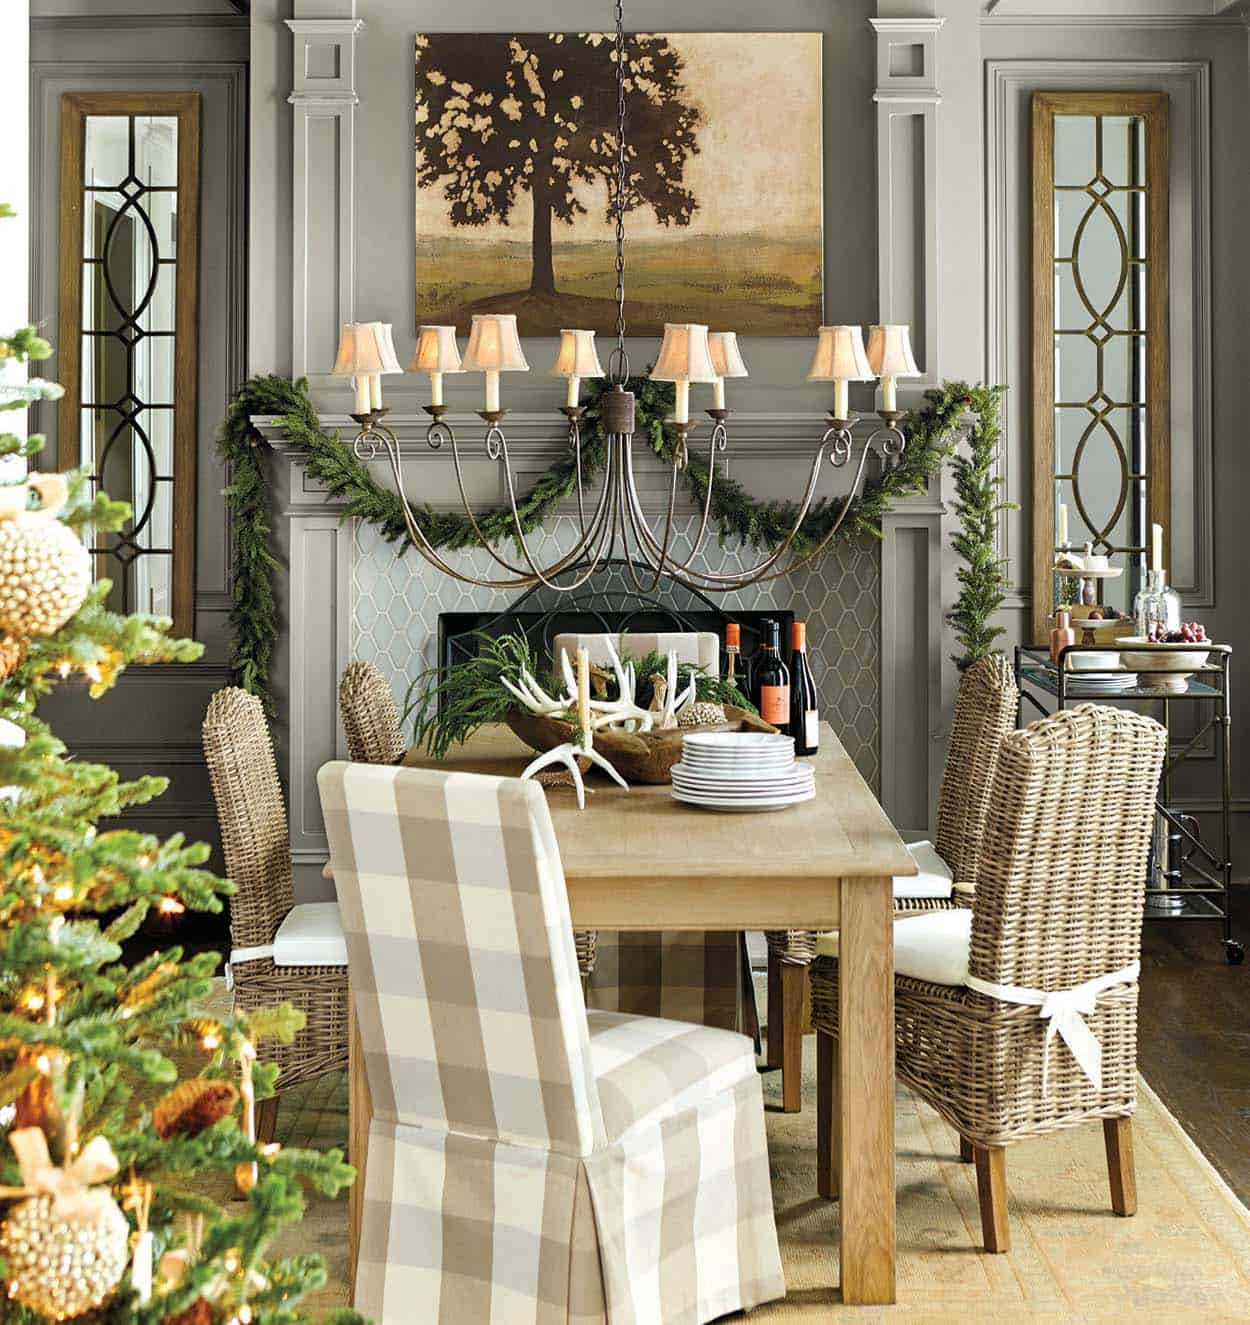 Christmas Decorations Holiday Decorations Decor: 40+ Fabulous Rustic-Country Christmas Decorating Ideas